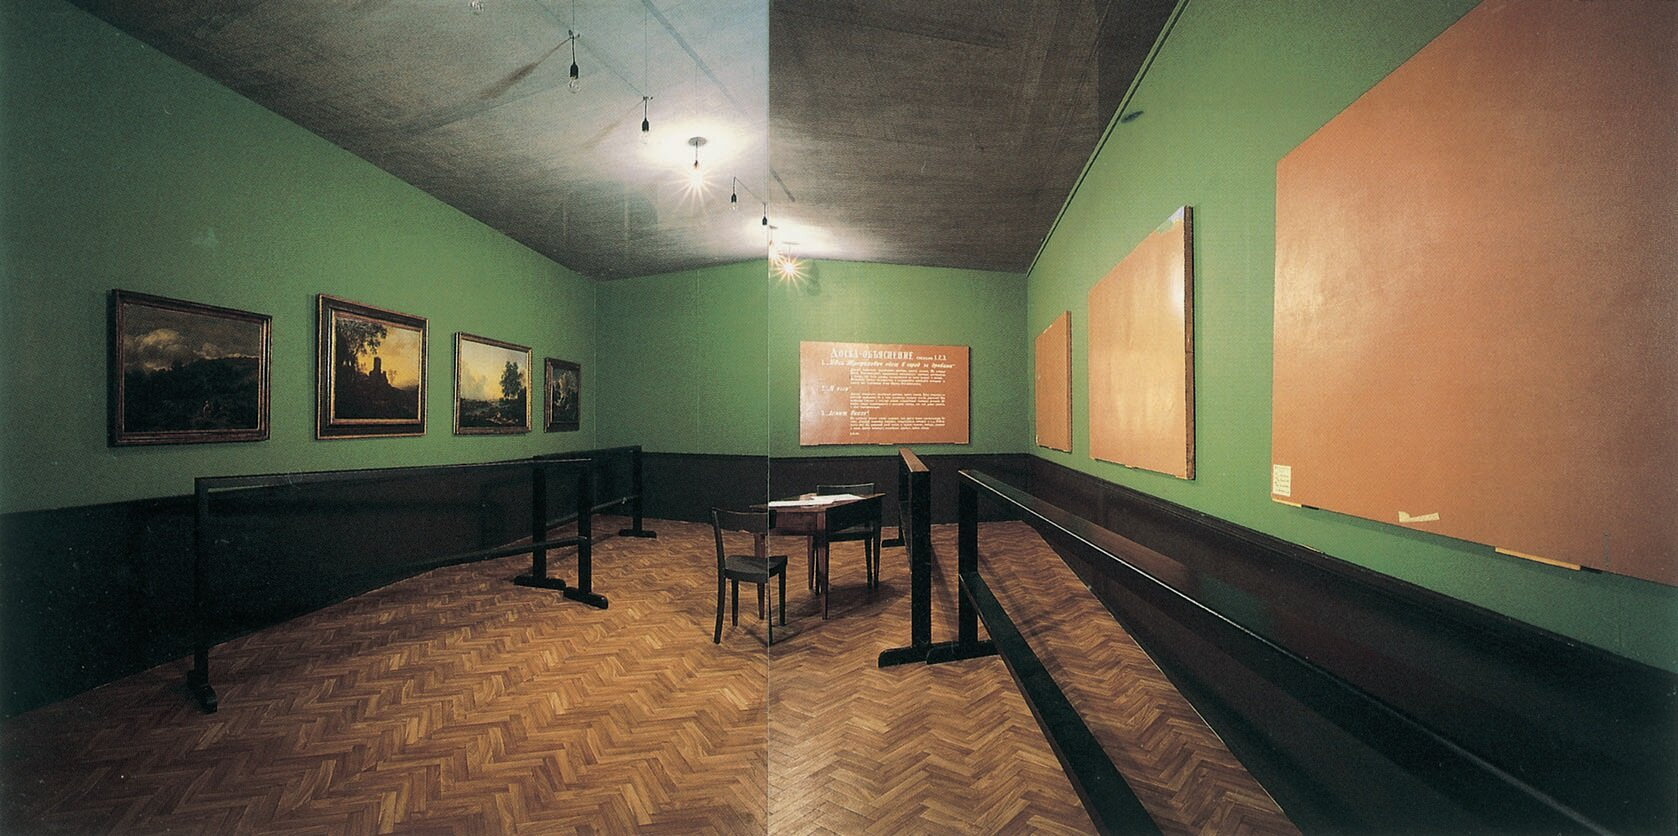 View-of-installation-Akademie-der-Bildenden-Künste-Vienna-1992-Photo-collage-Photo-by.jpg